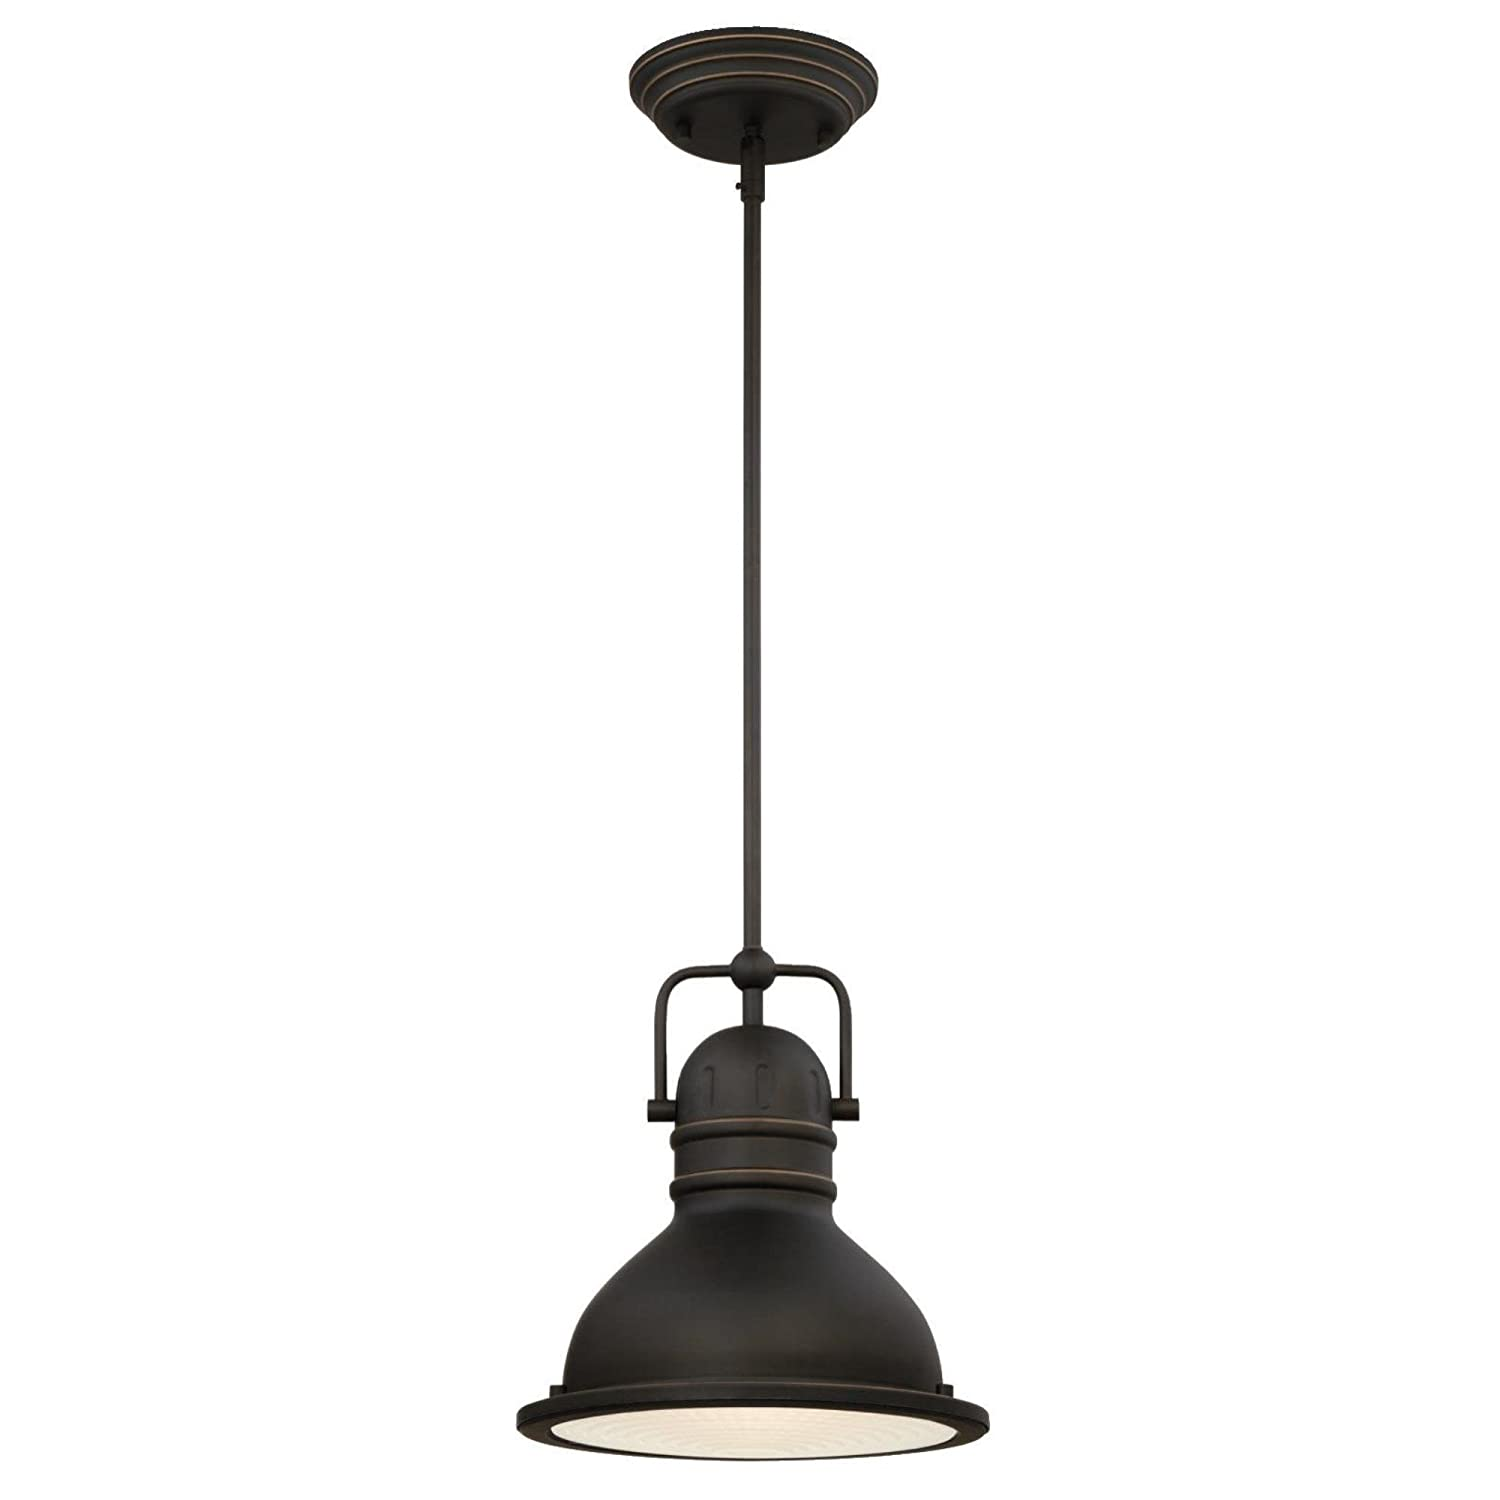 Westinghouse Lighting 63087B Boswell One-Light LED Indoor Pendant, Oil Rubbed Bronze Finish with Highlights and Frosted Prismatic Lens